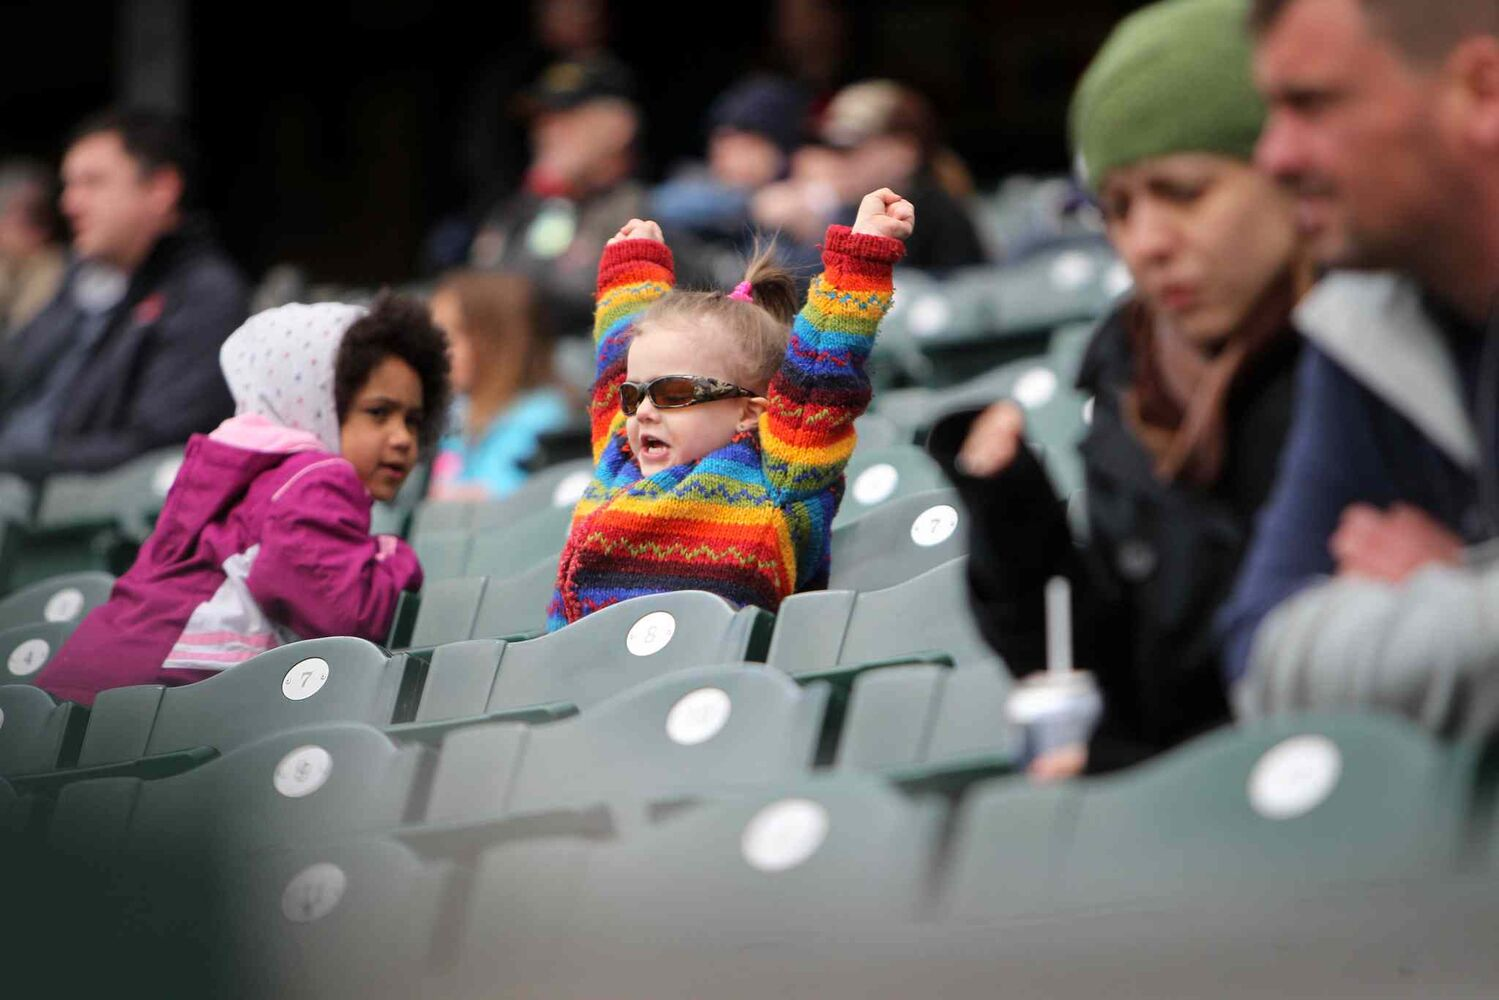 Three-year-old Ella Smith practices cheering for her home team, the Goldeyes, while hanging out in the stands Saturday.  (Ruth Bonneville / Winnipeg Free Press)